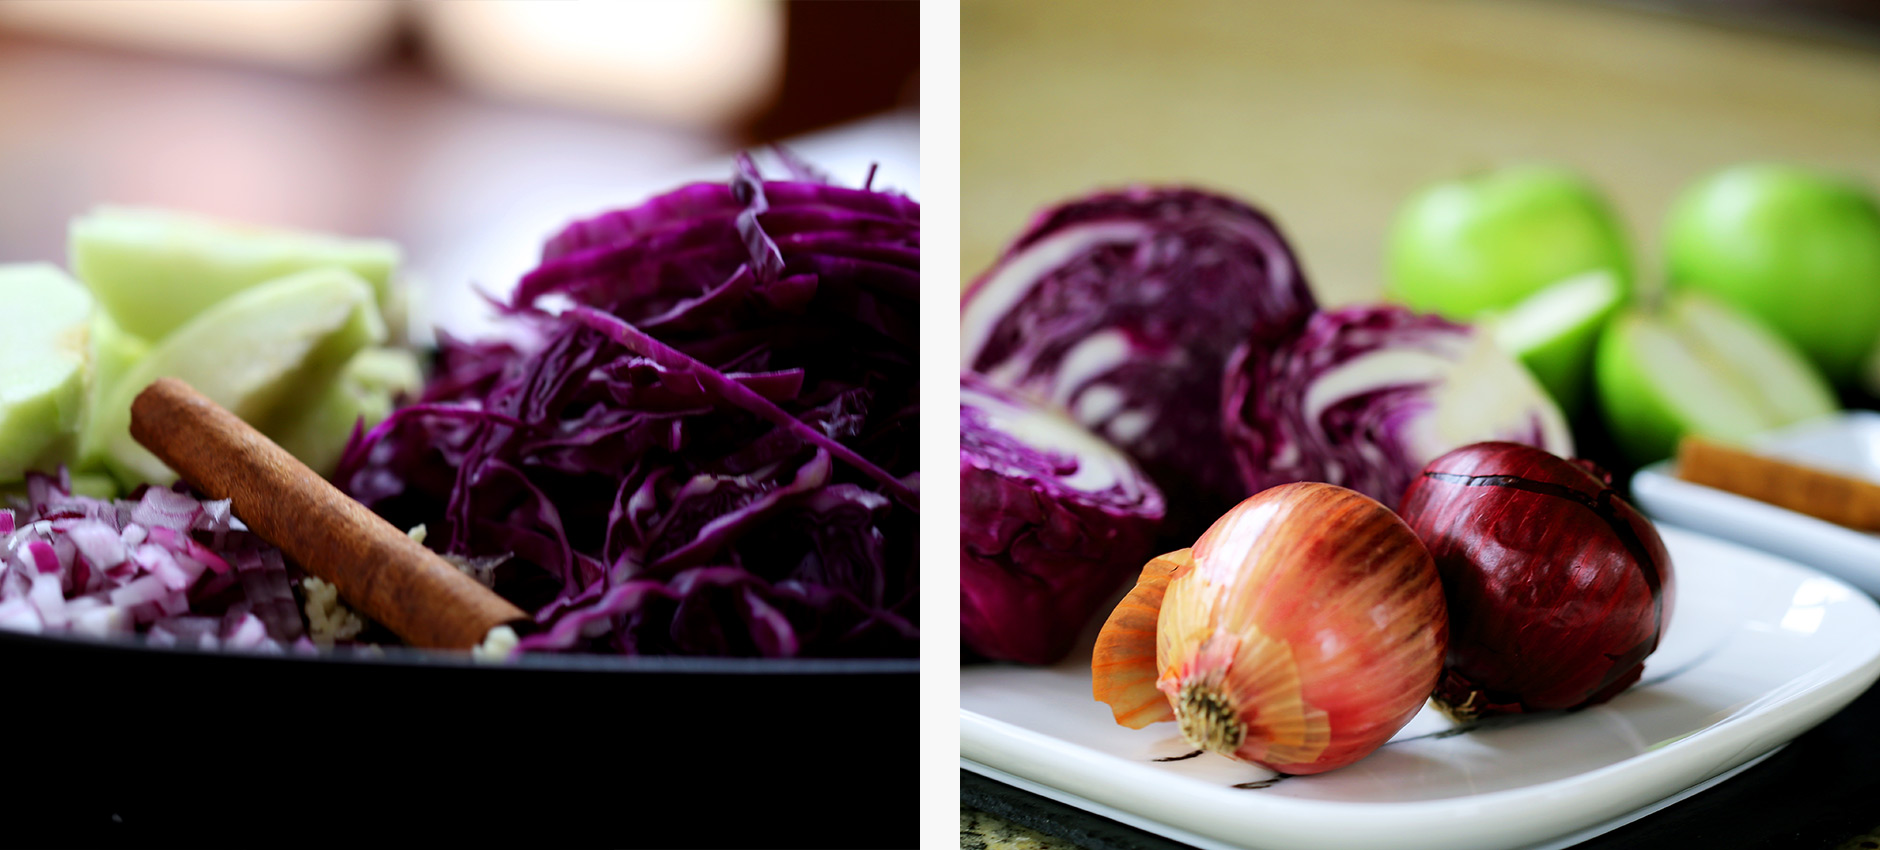 chalmar-braised-red-cabbage-with-apples